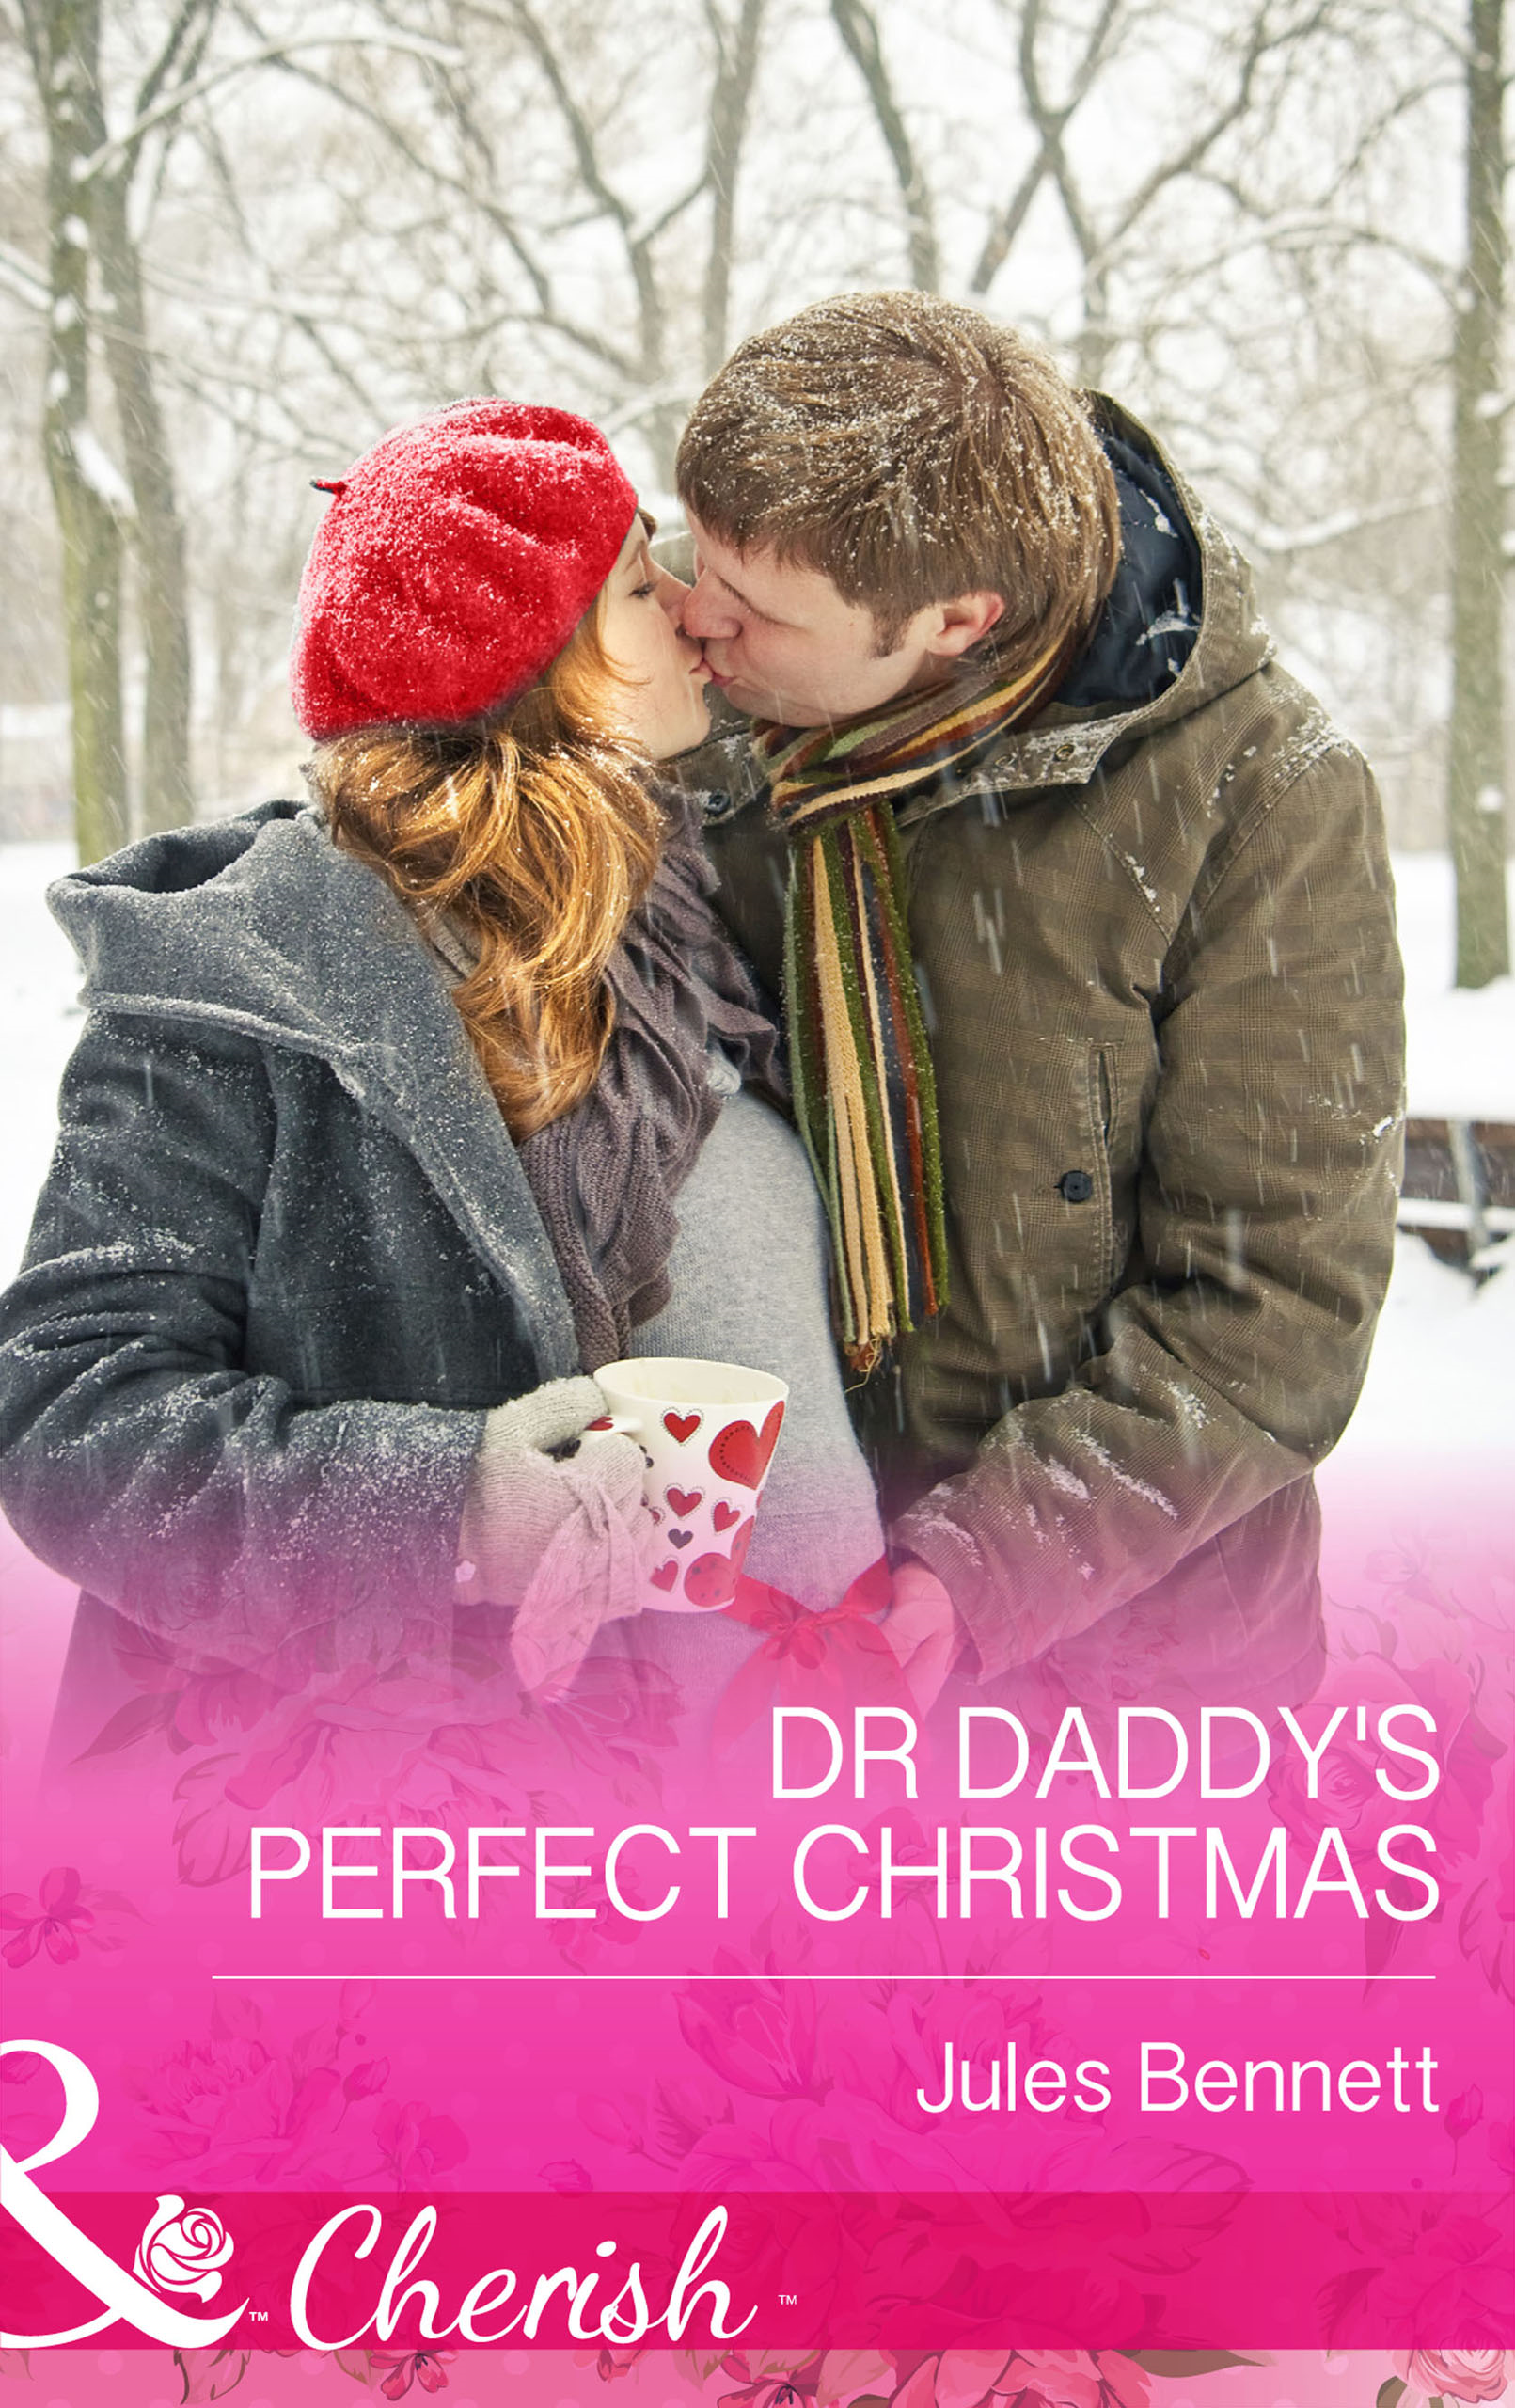 Dr Daddy's Perfect Christmas (Mills & Boon Cherish) (The St. Johns of Stonerock - Book 1)